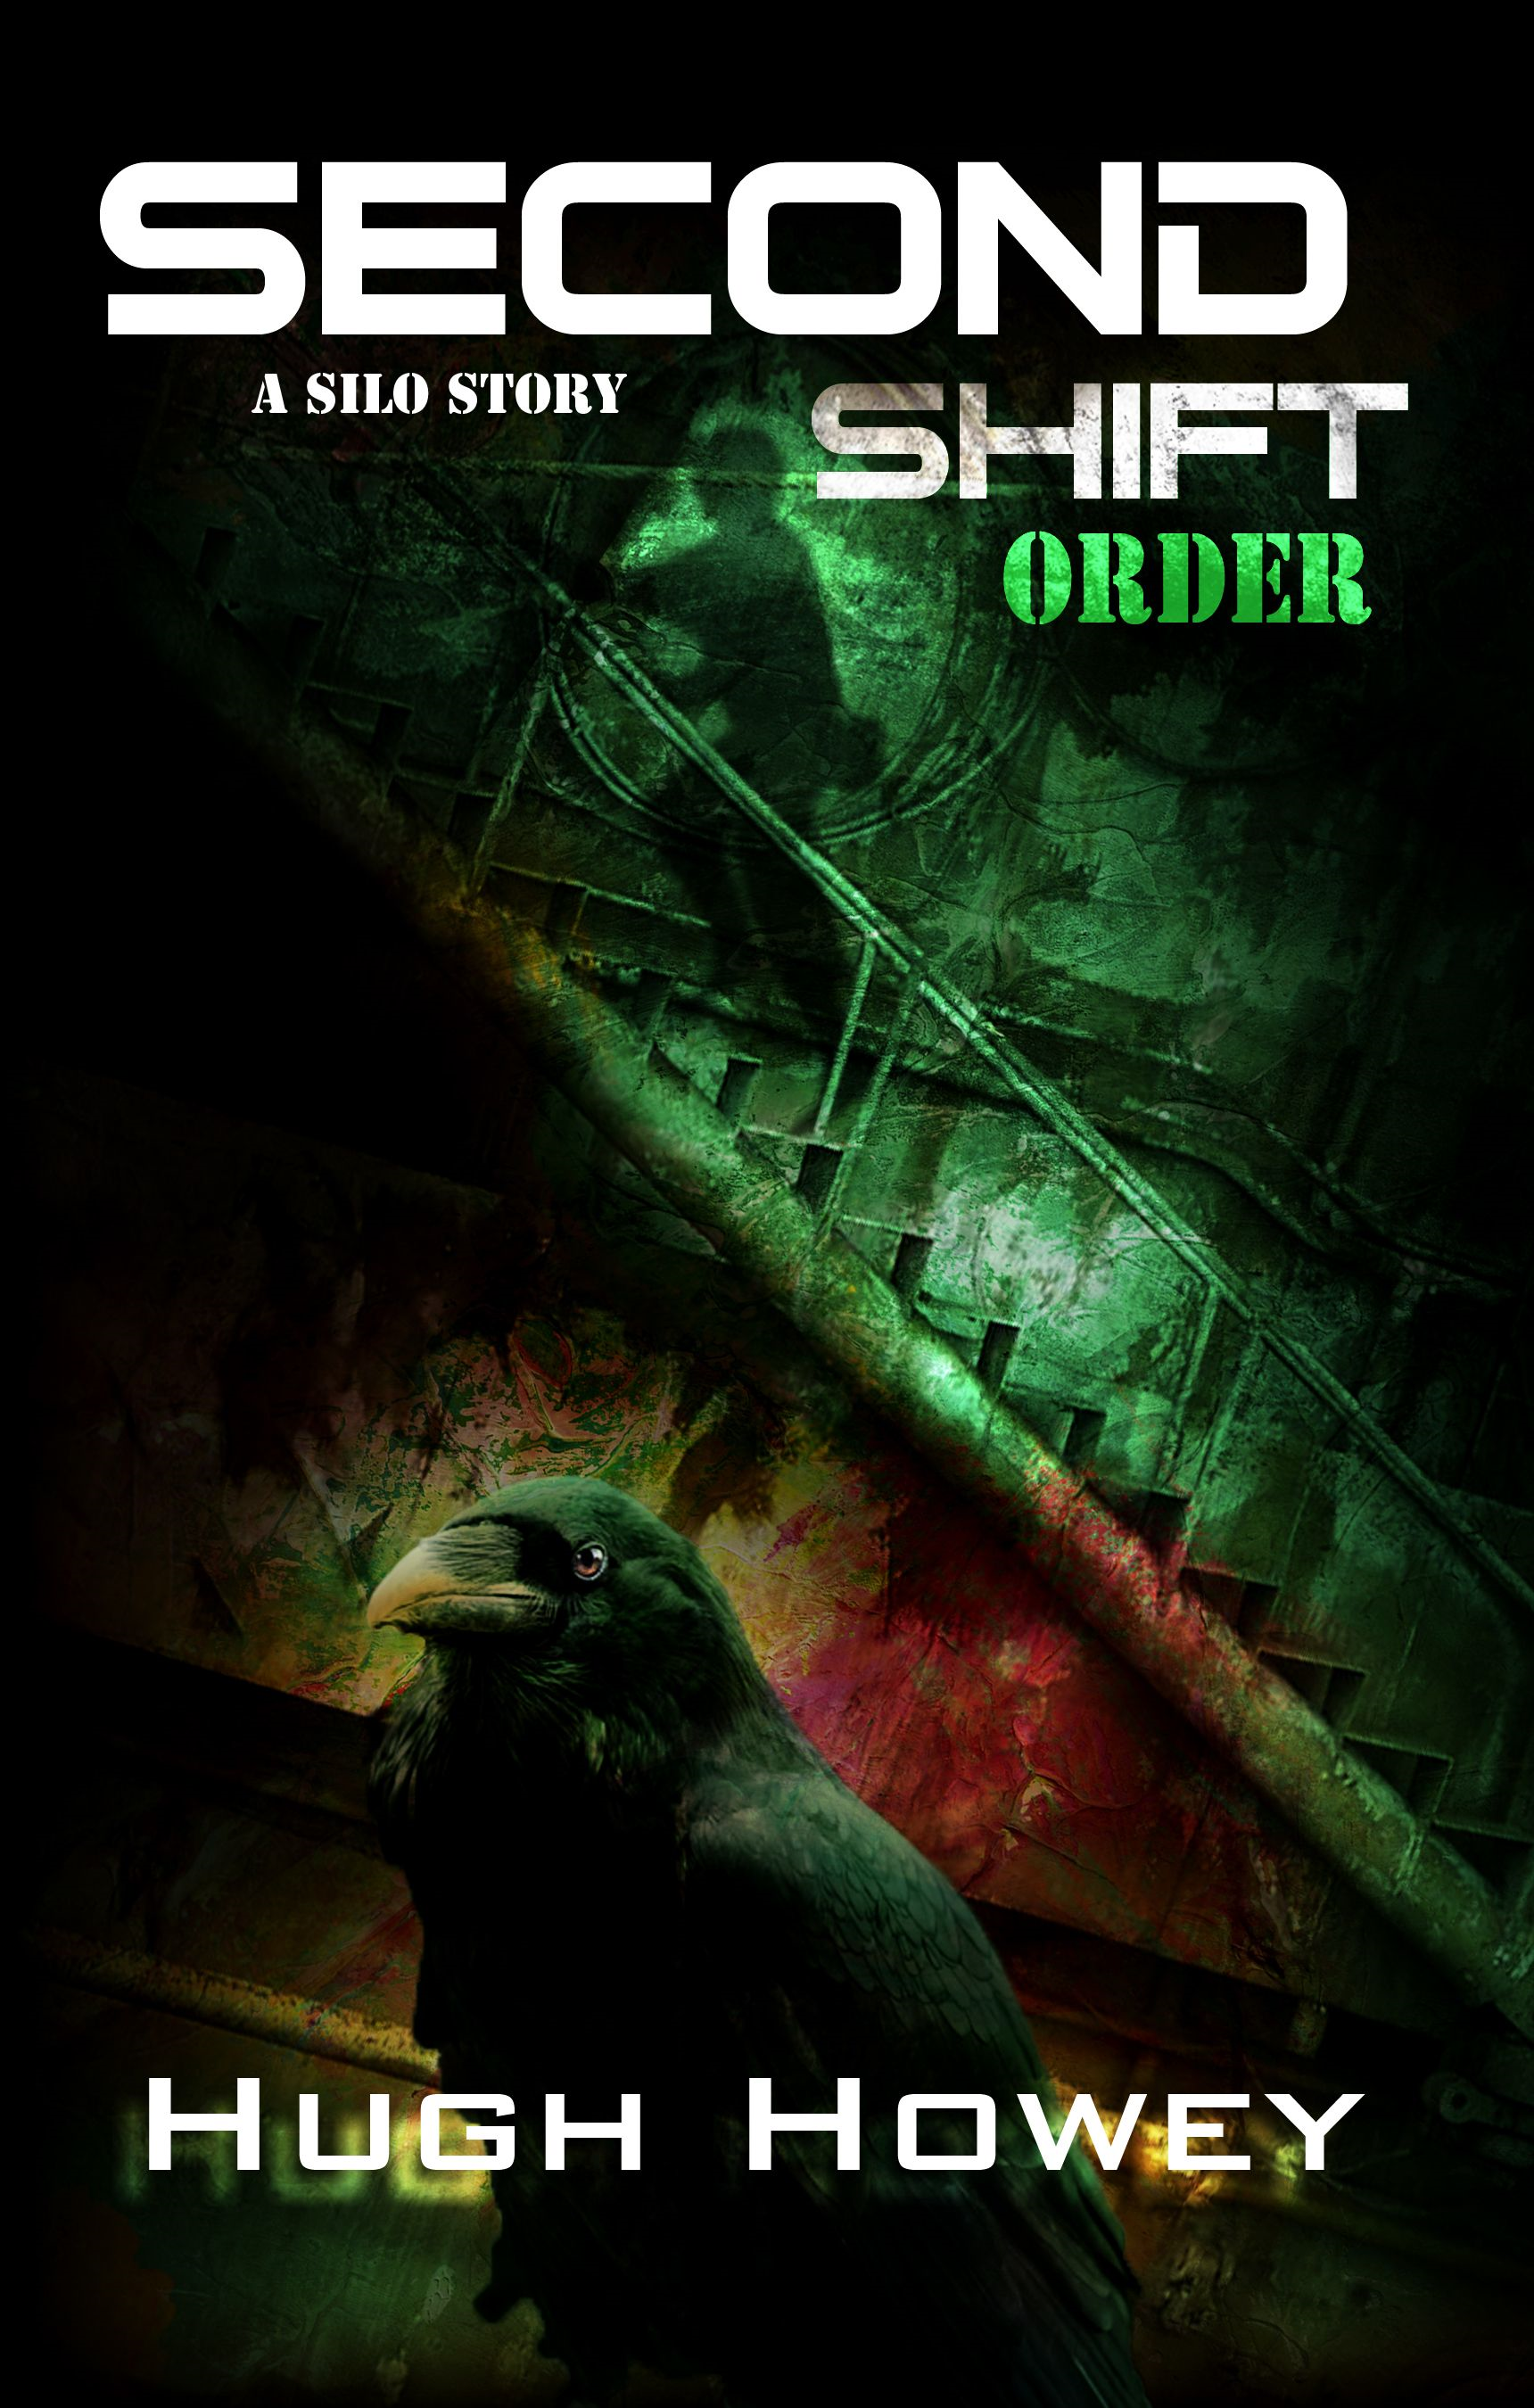 Second Shift - Order (Part 7 of the Wool Series) By: Hugh Howey